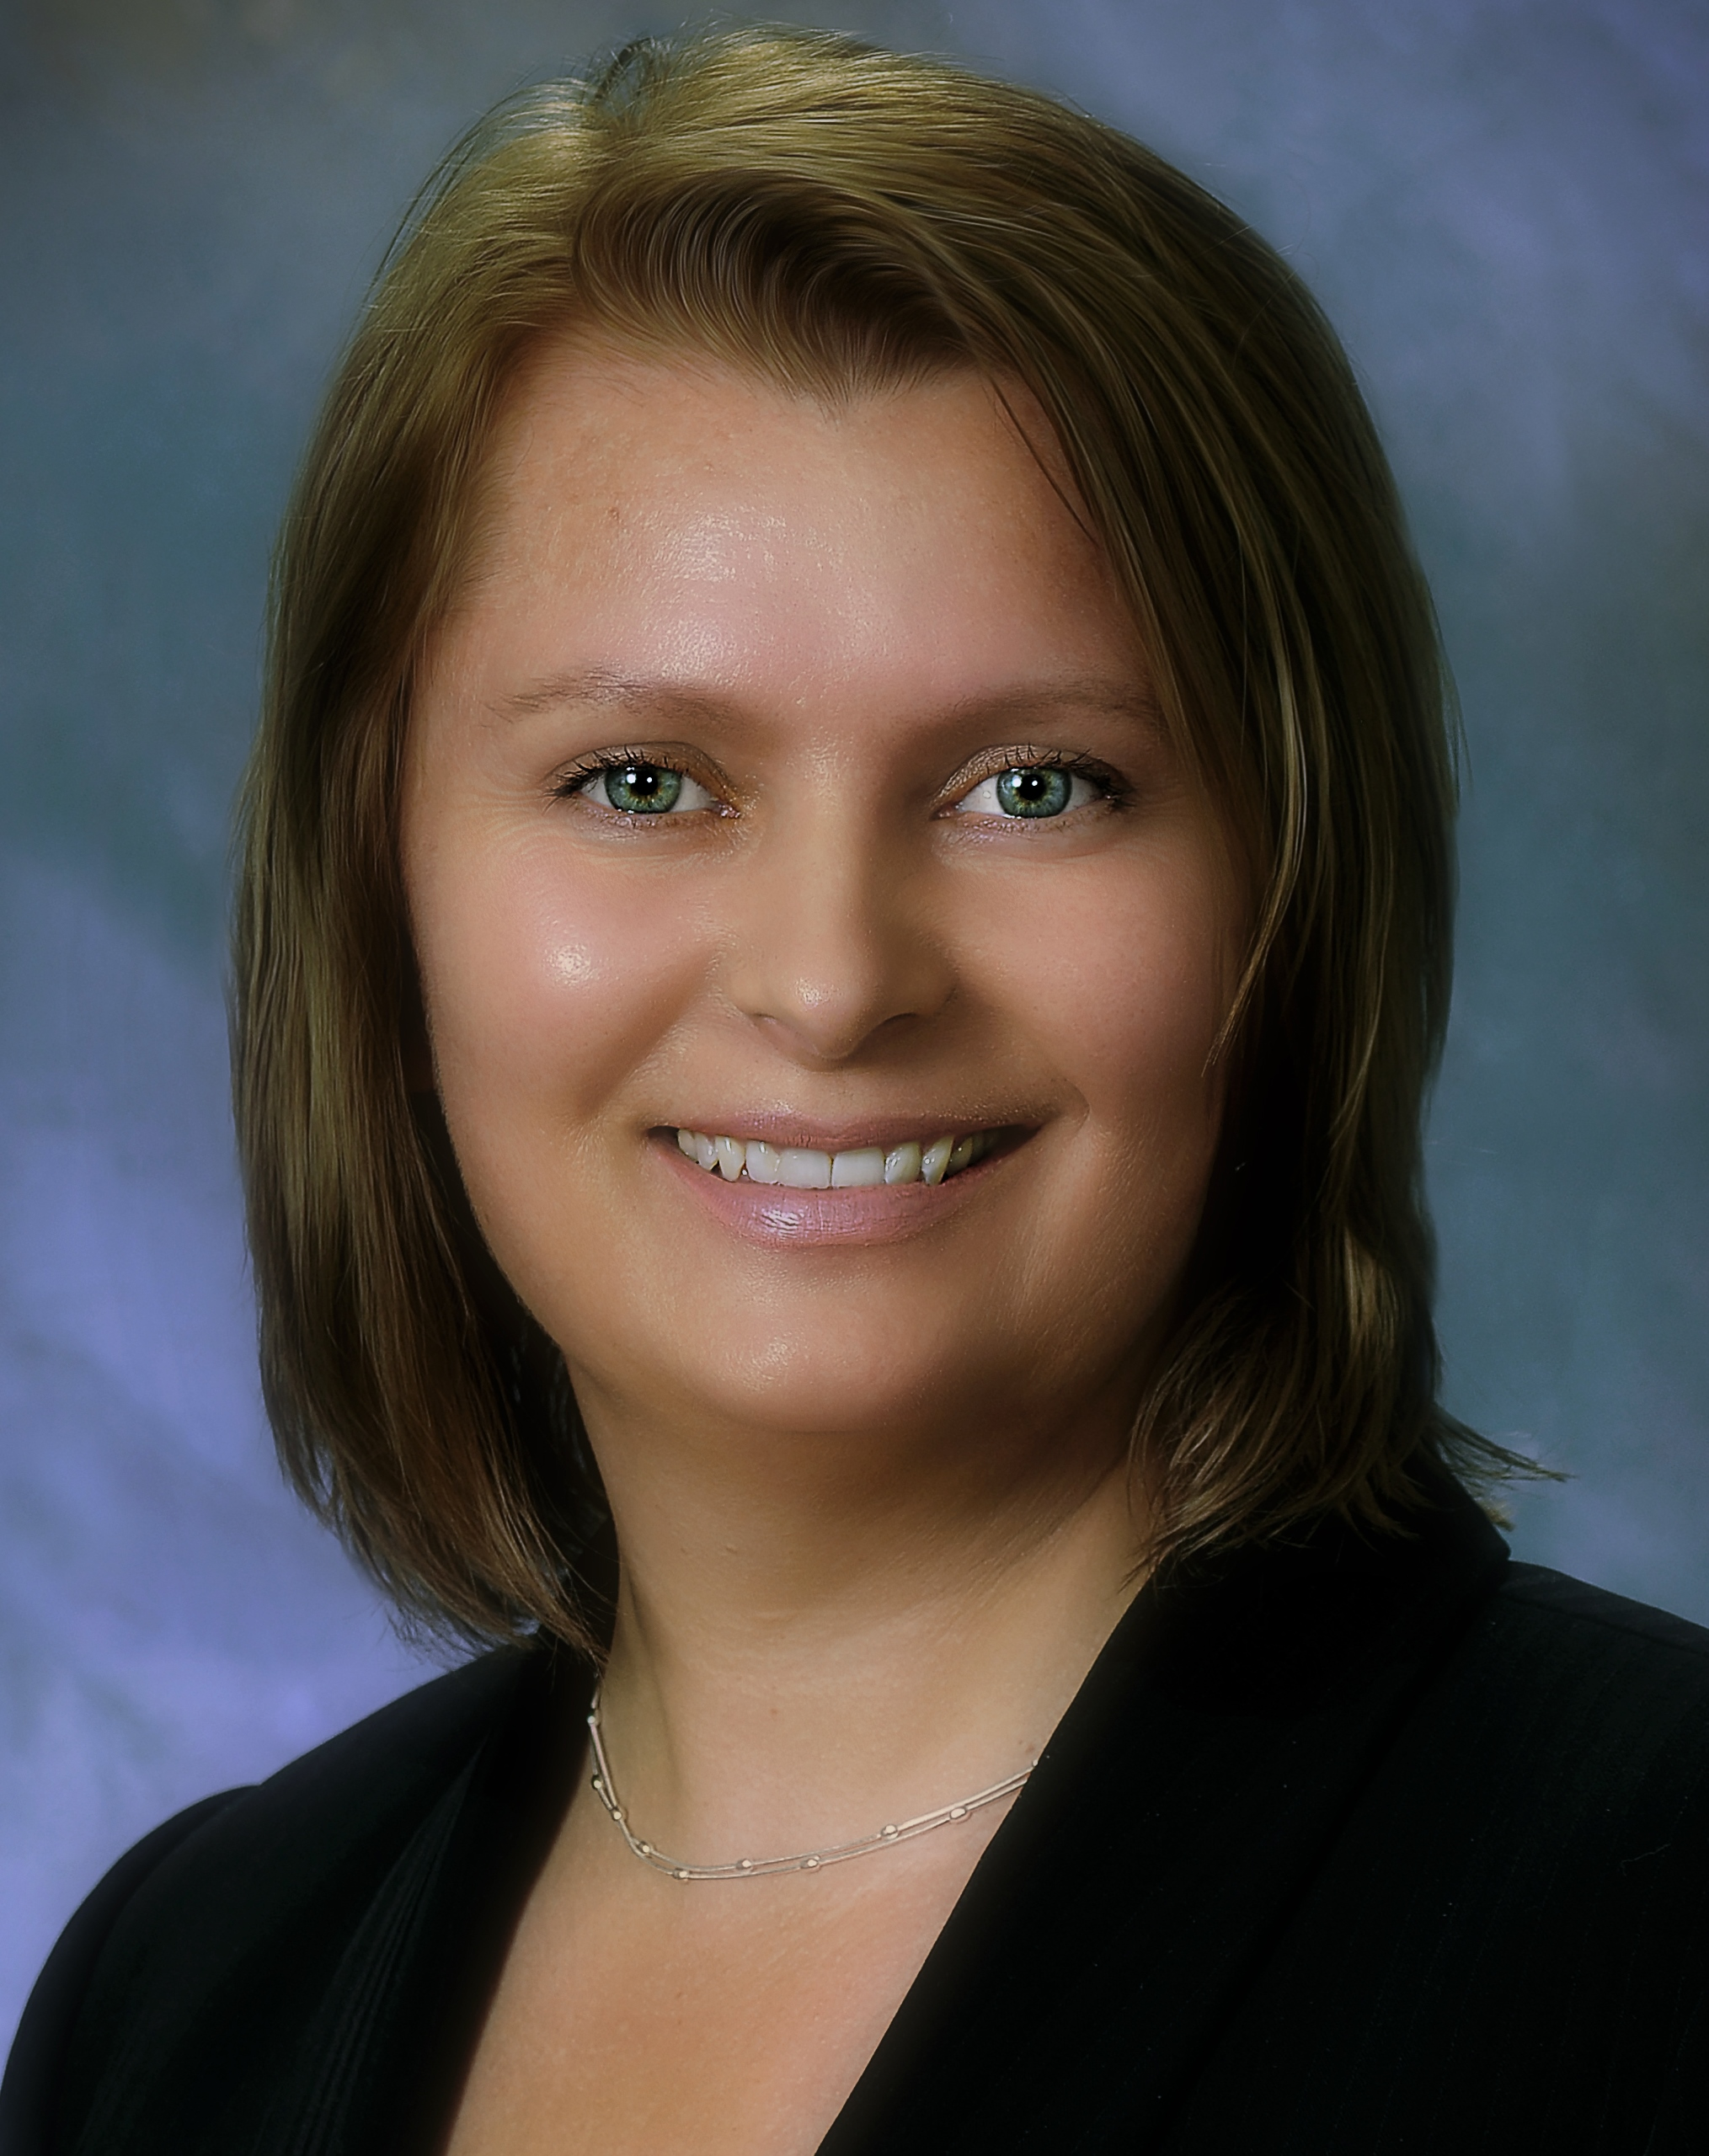 Professional headshot of Dr. Angela Dolganiuc MD, PhD of Raleigh General Medical Group